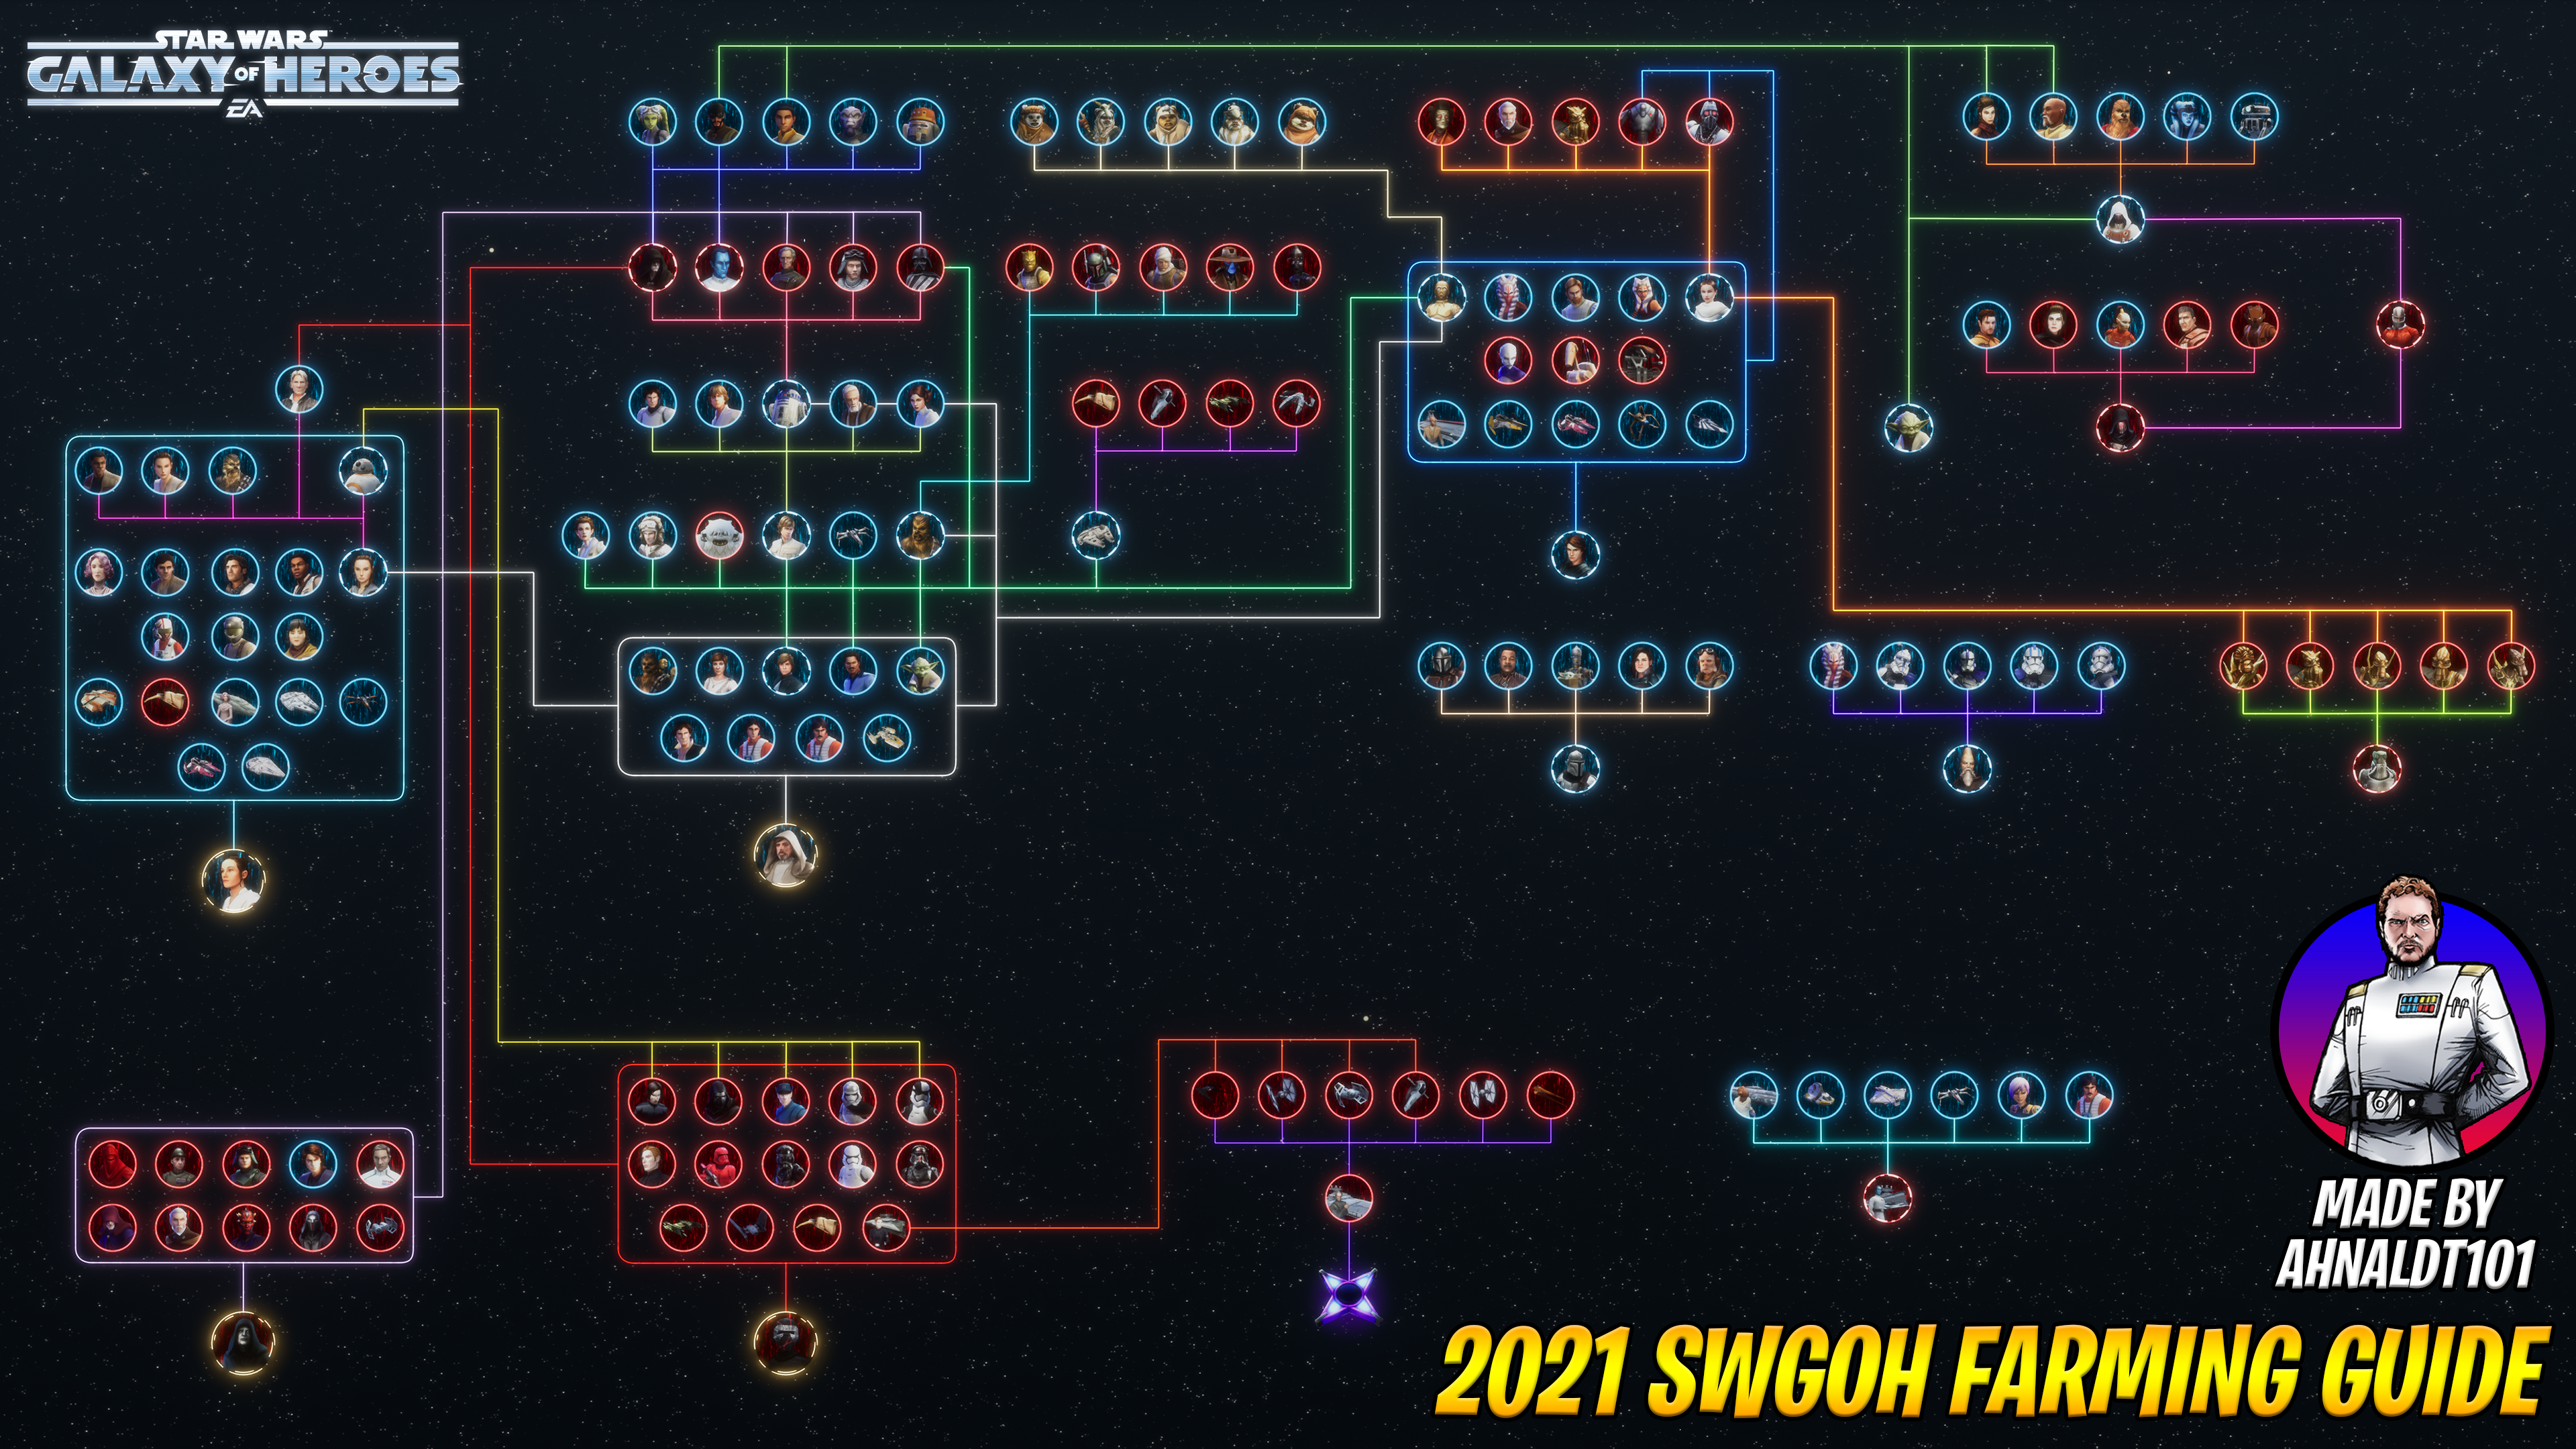 2021_FARMING_GUIDE_COMPLETE_OVERVIEW.png